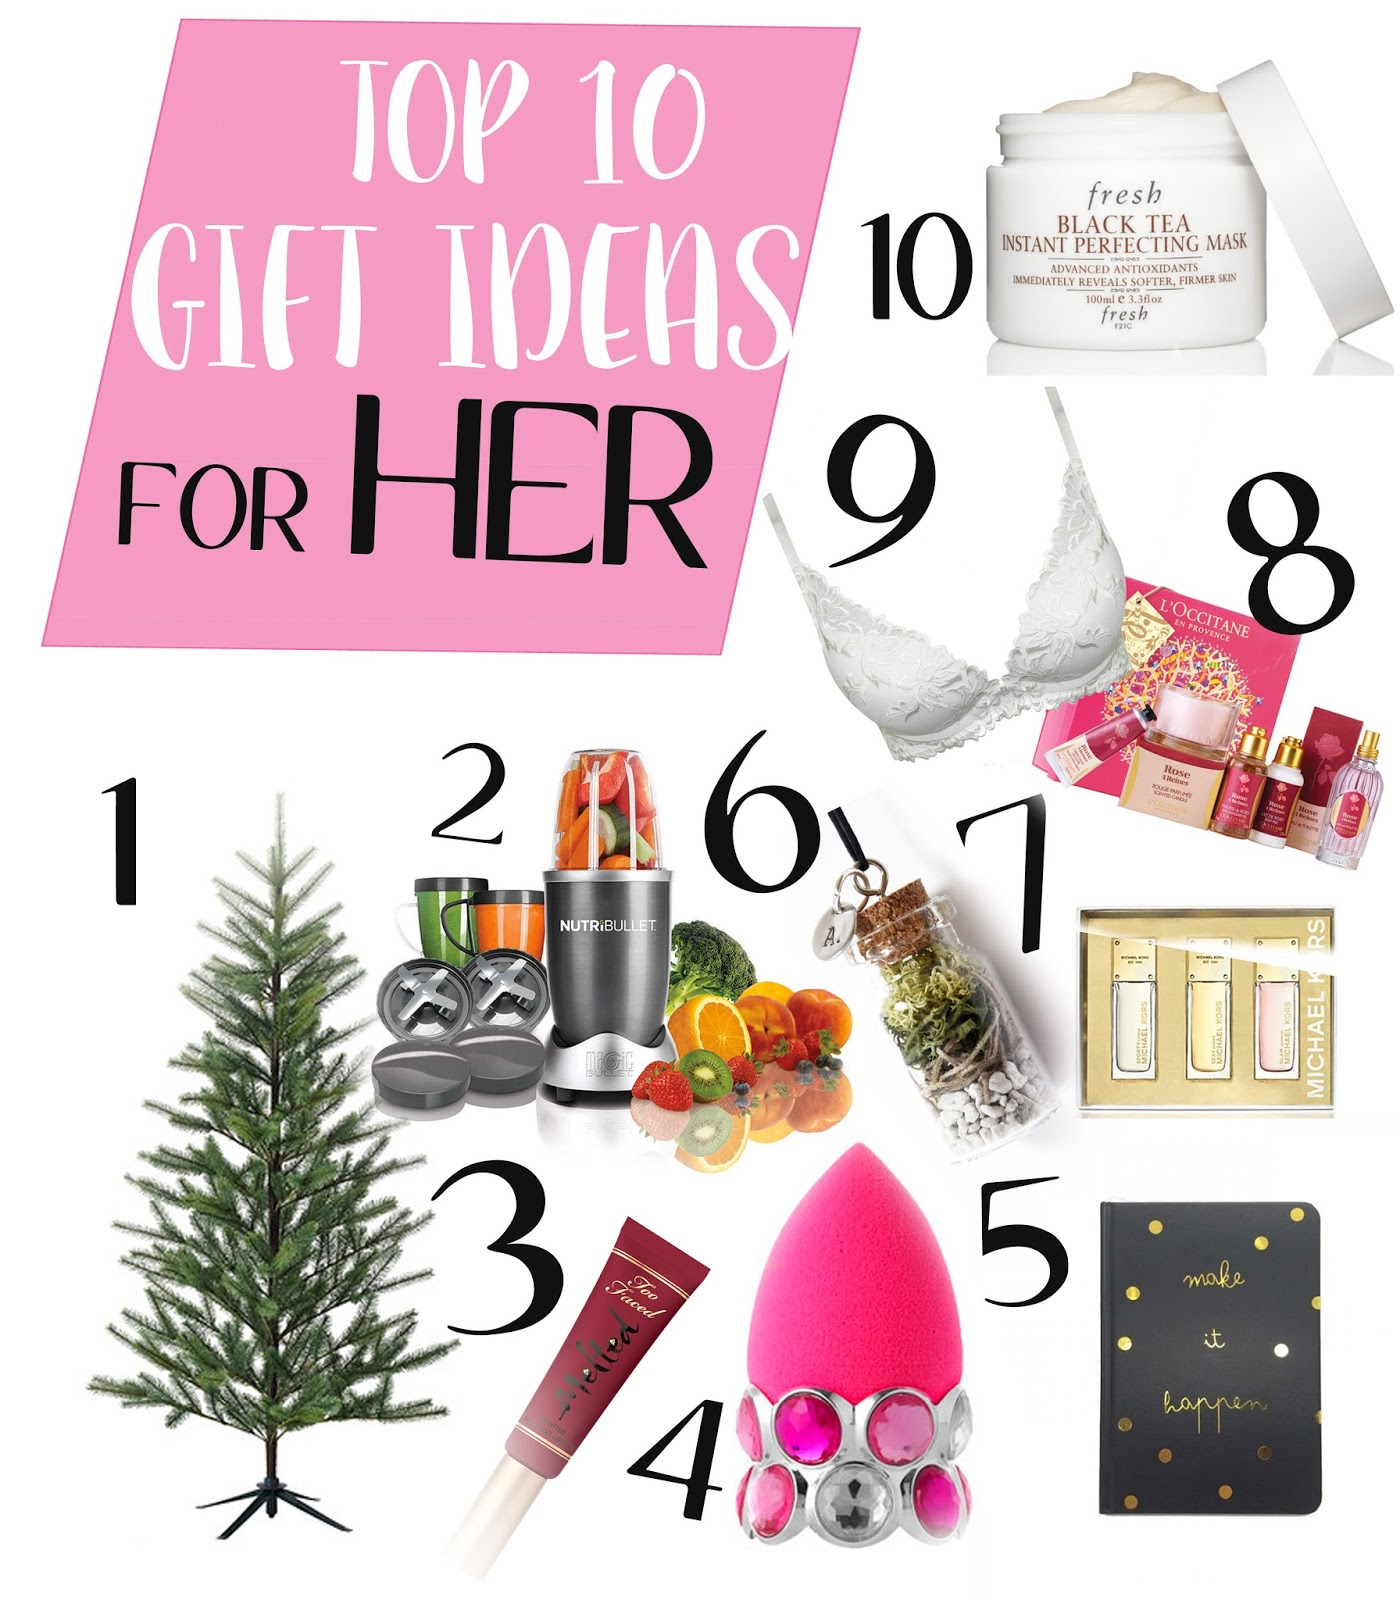 Gifts For Architects The Ultimate Guide: Ultimate Gift Guide : Top 10 Gift Ideas For HER